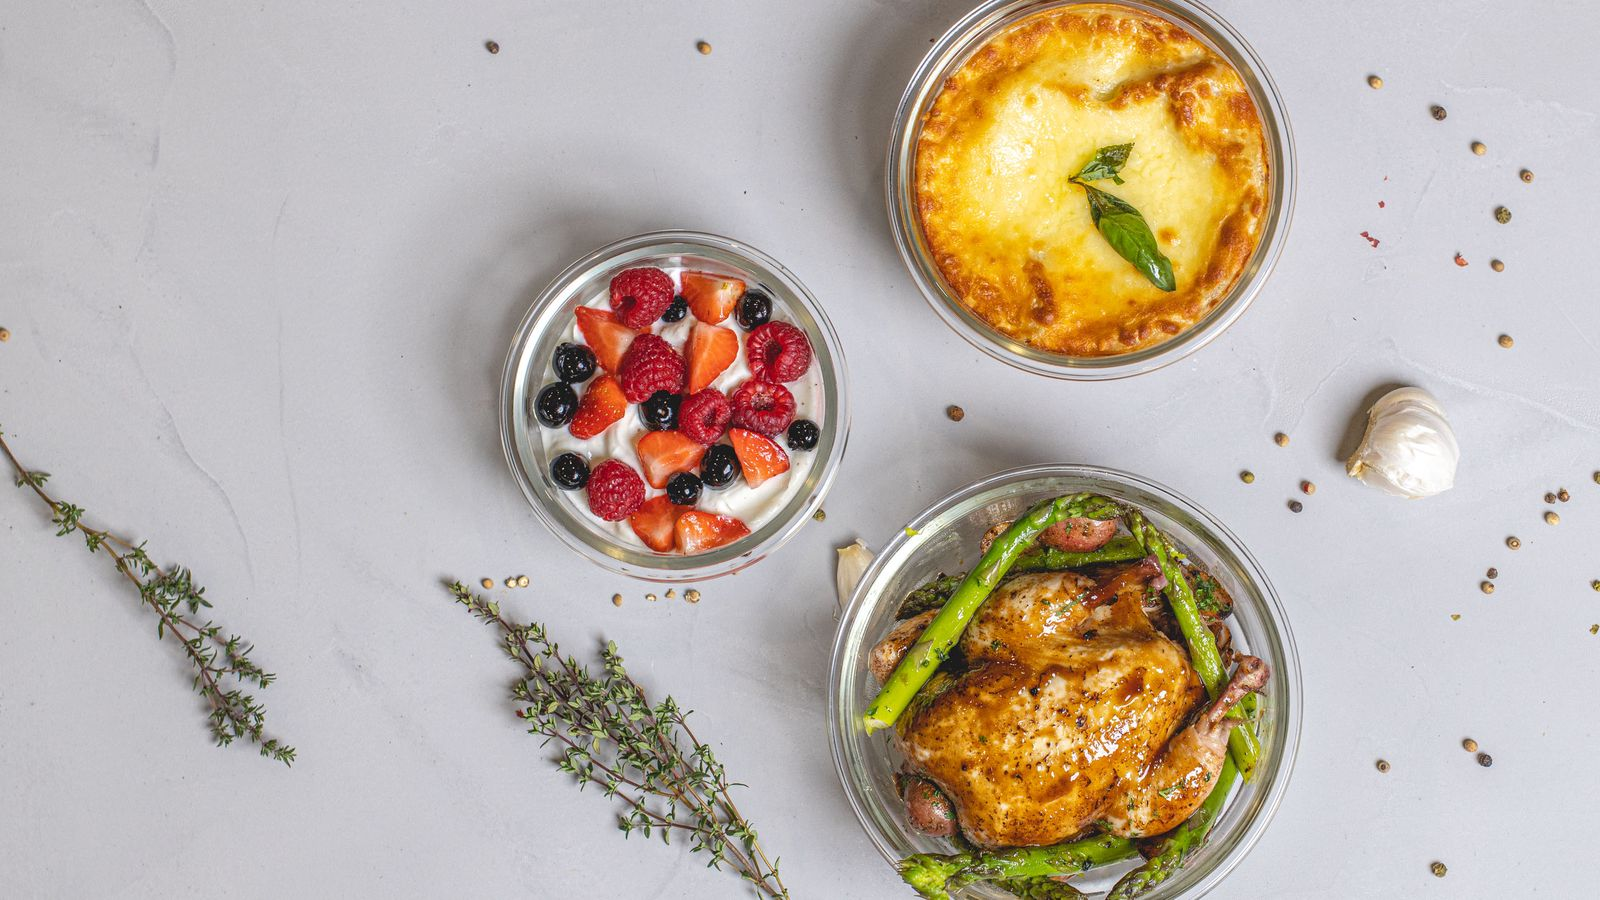 Food Containers & Oven Dishes